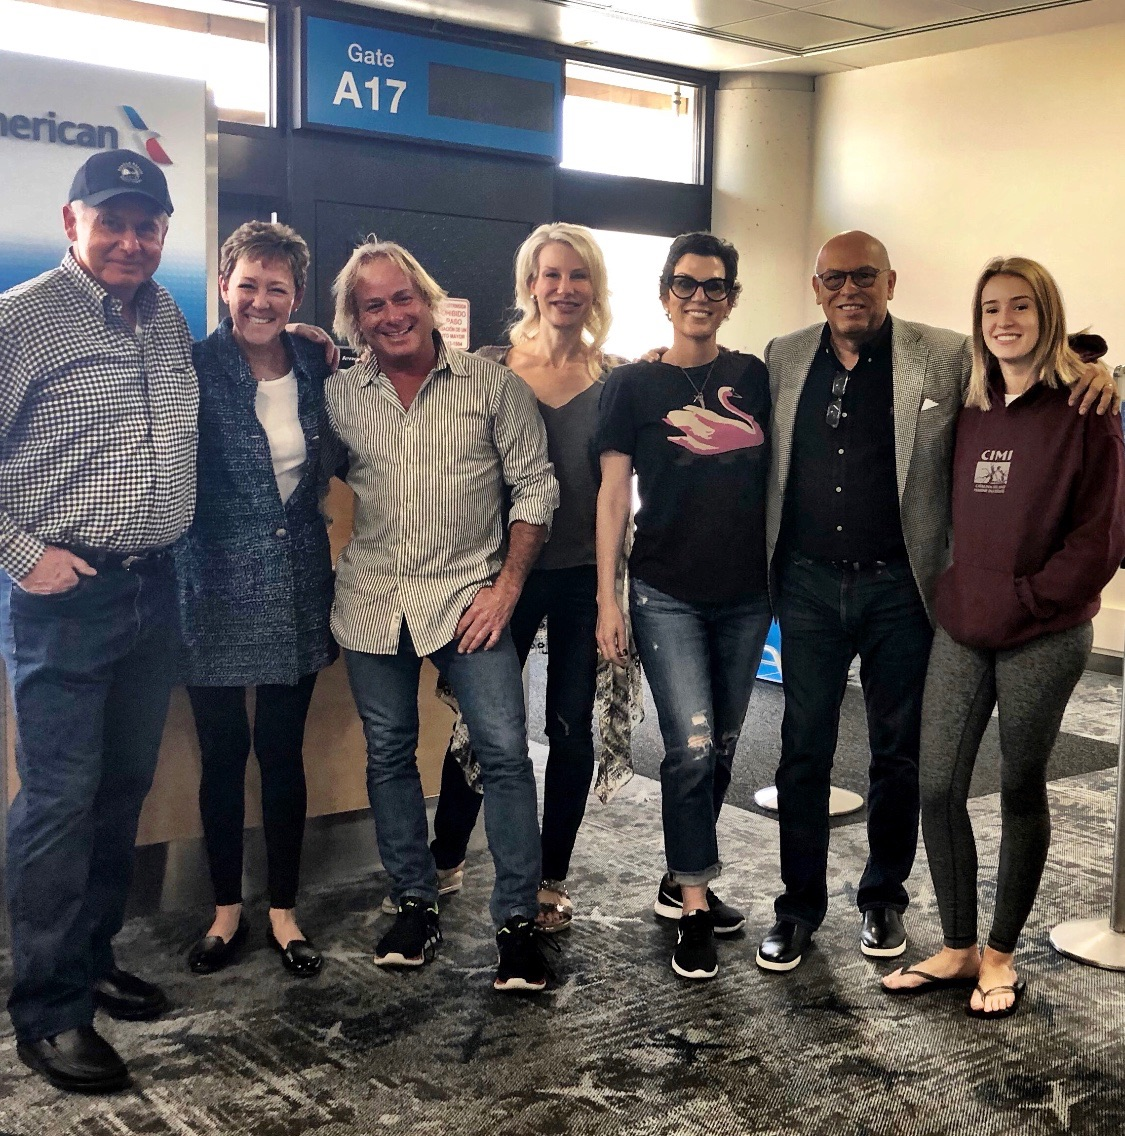 The Phoenix Crew ready for departure - Dave and Becky Stockett, Walter Spitz, Denise Lewis, Isabel, MC and Bella! Tiffany is meeting us in Miami and the Stankovic's are already in Spain!